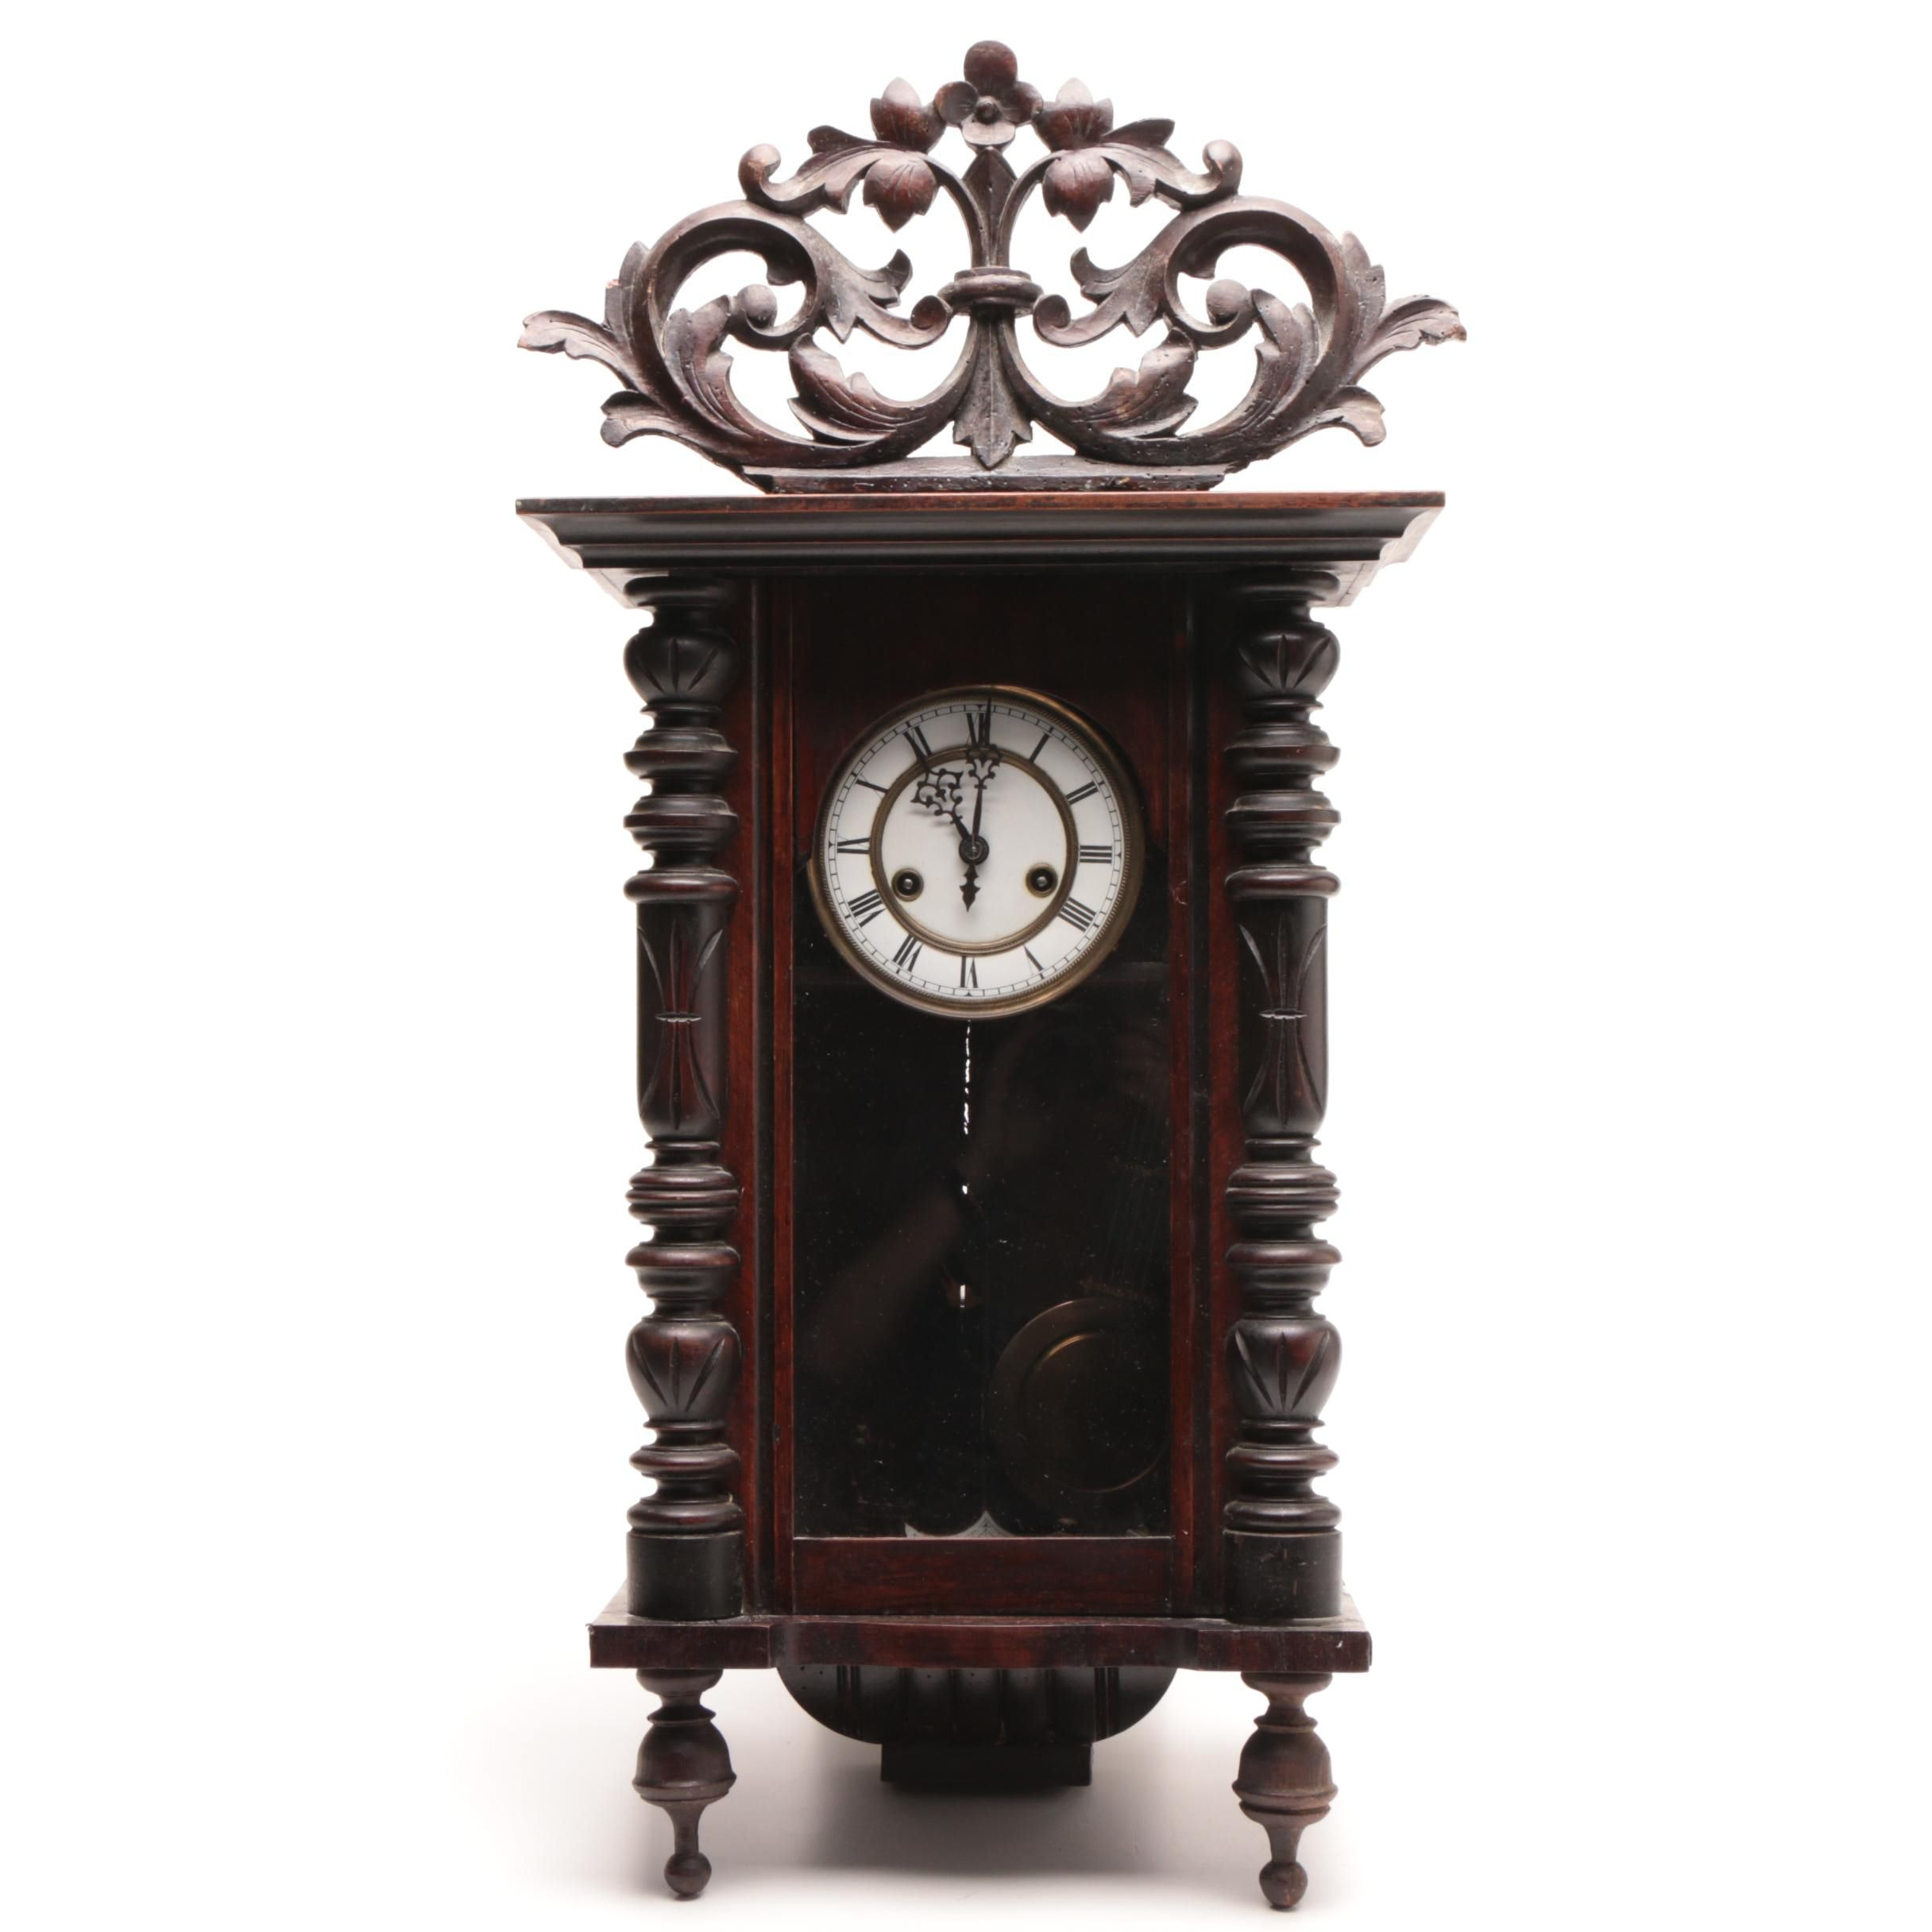 Antique Gustav Becker Silesia Wall Clock Circa 1890s